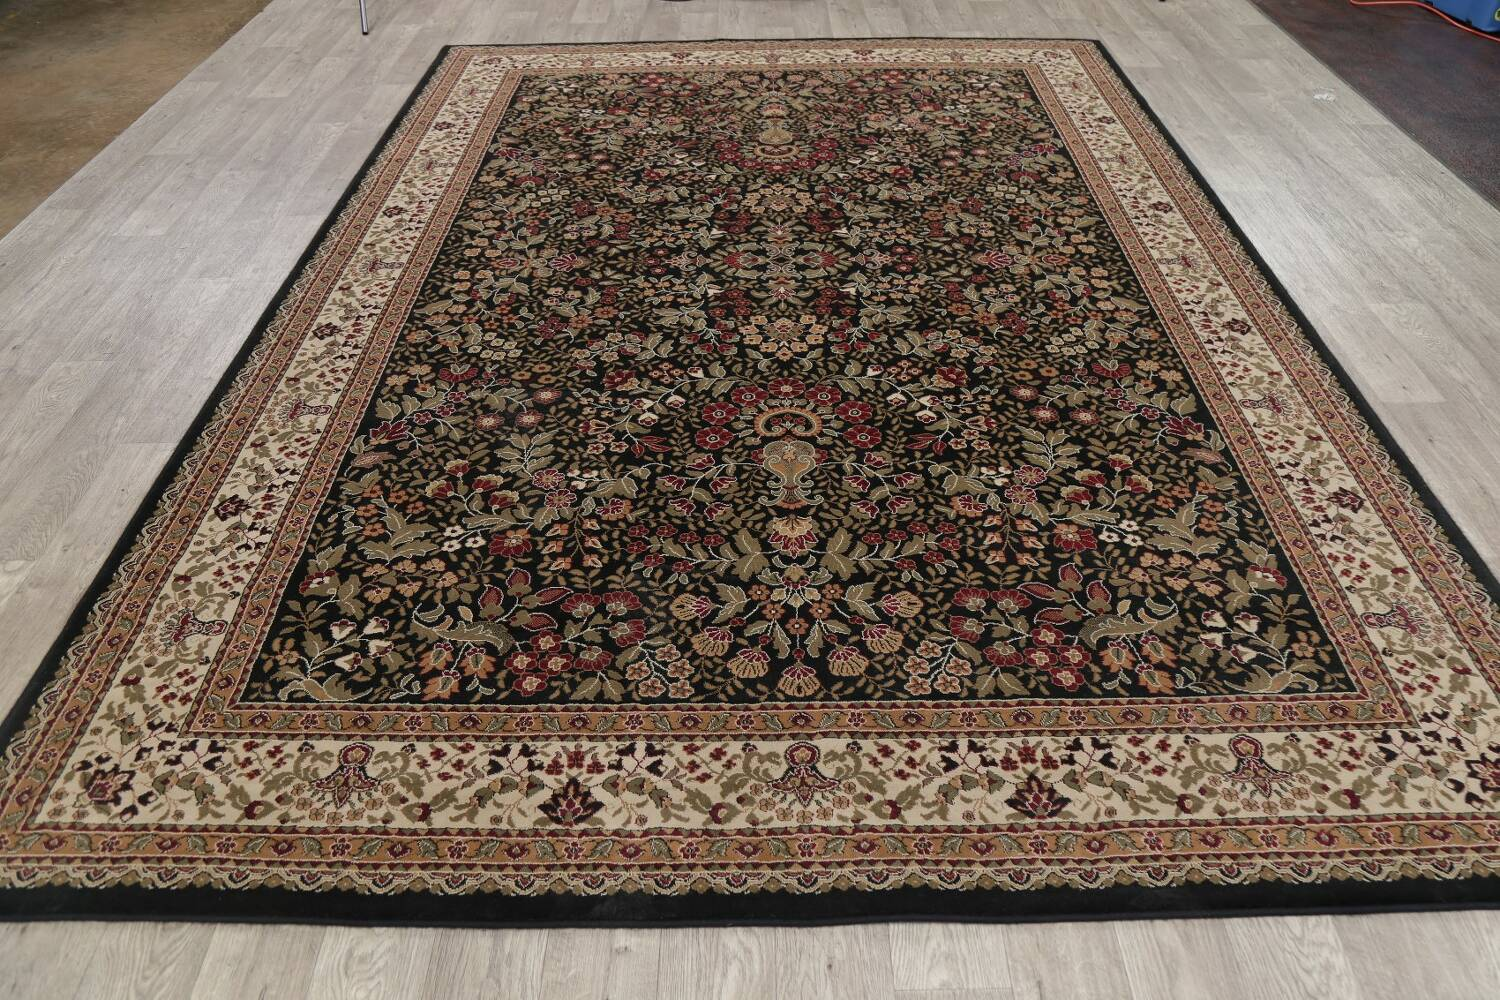 All-Over Floral Agra Turkish Area Rugs image 27